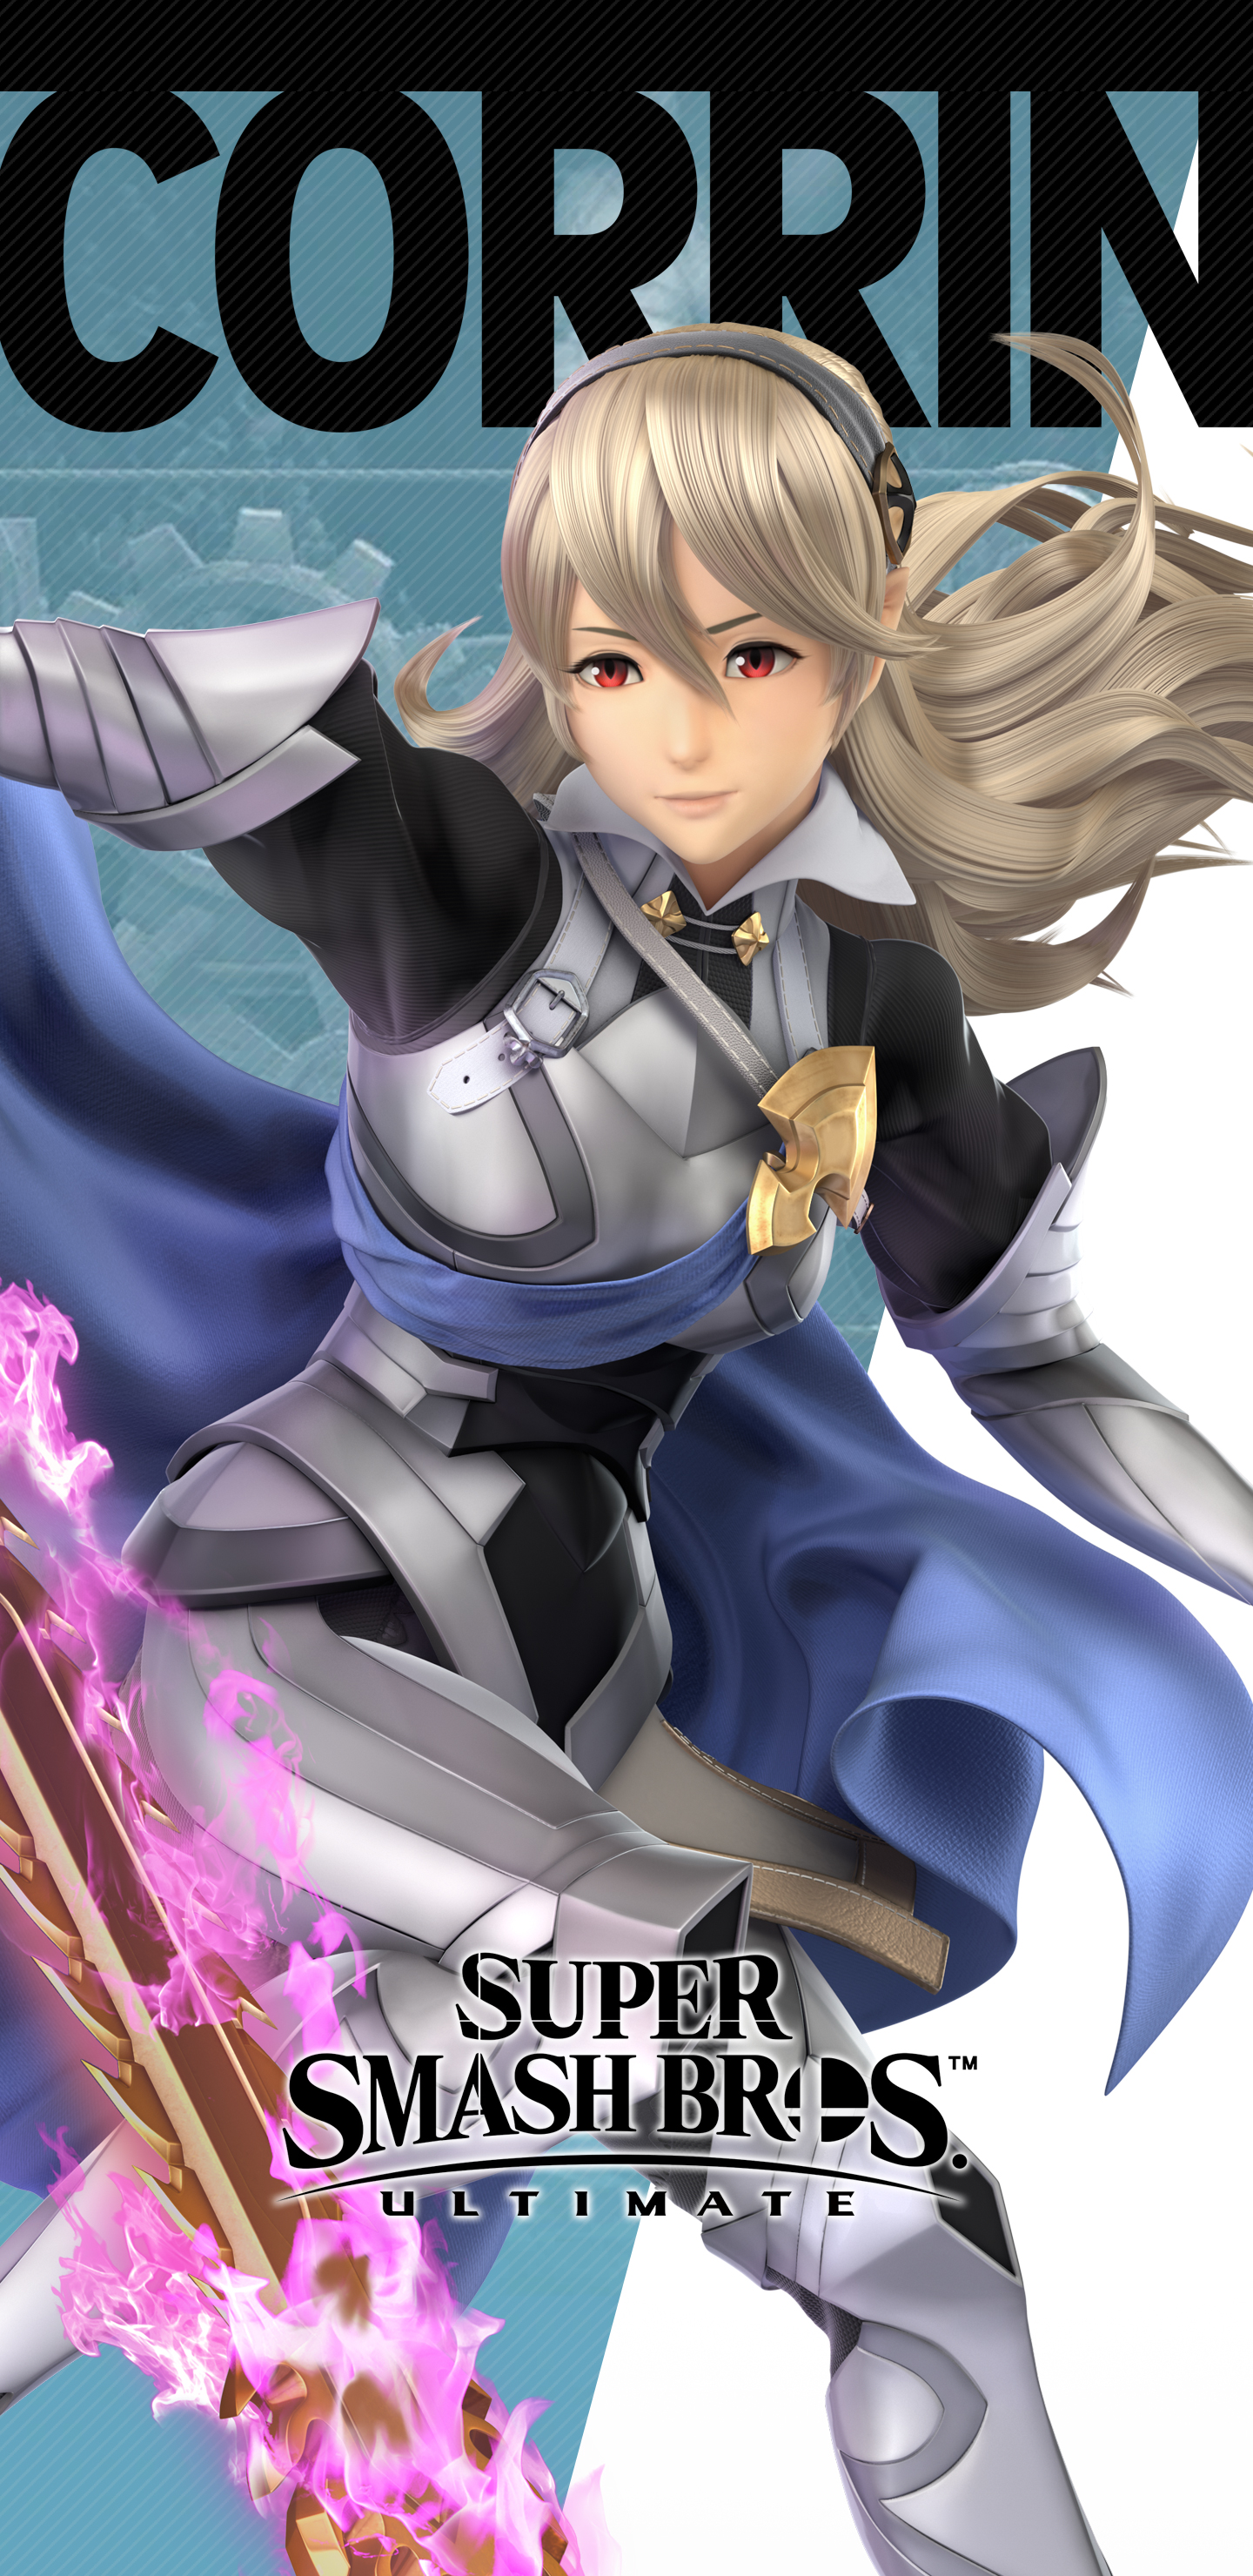 Super Smash Bros Ultimate Female Corrin Wallpapers Cat With Monocle